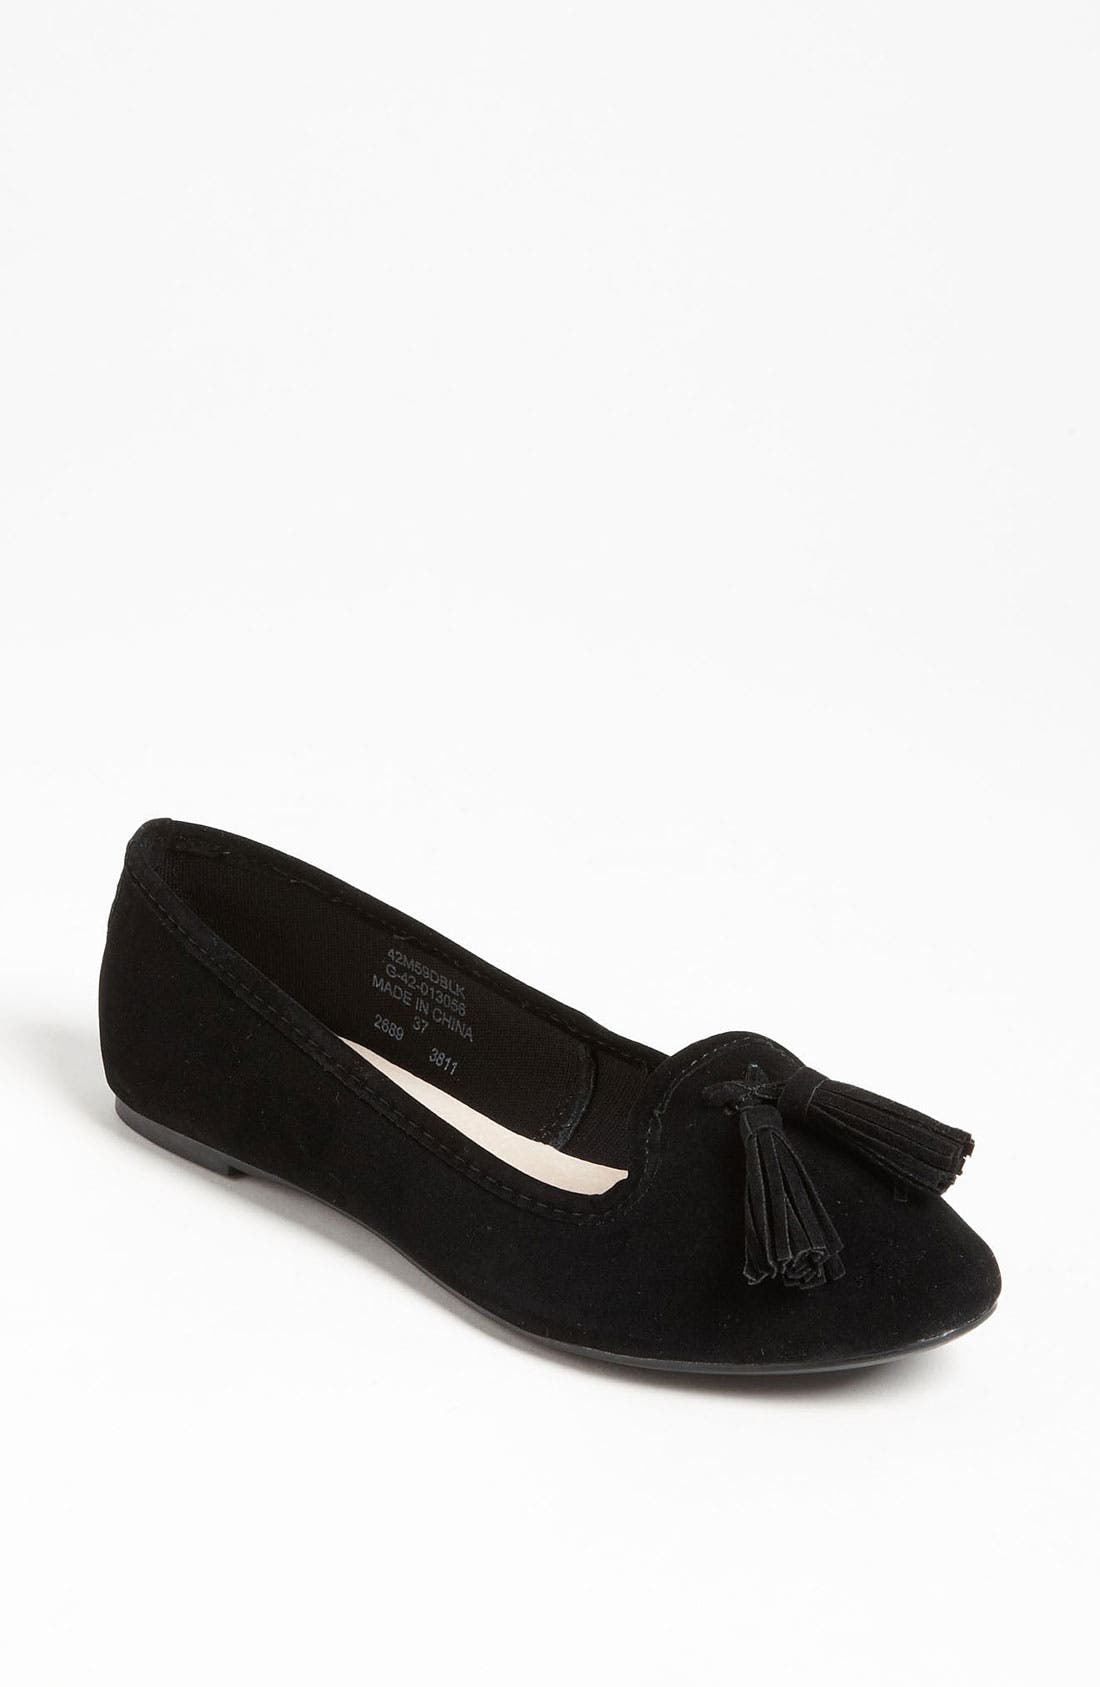 Alternate Image 1 Selected - Topshop 'Mex' Velvet Slipper